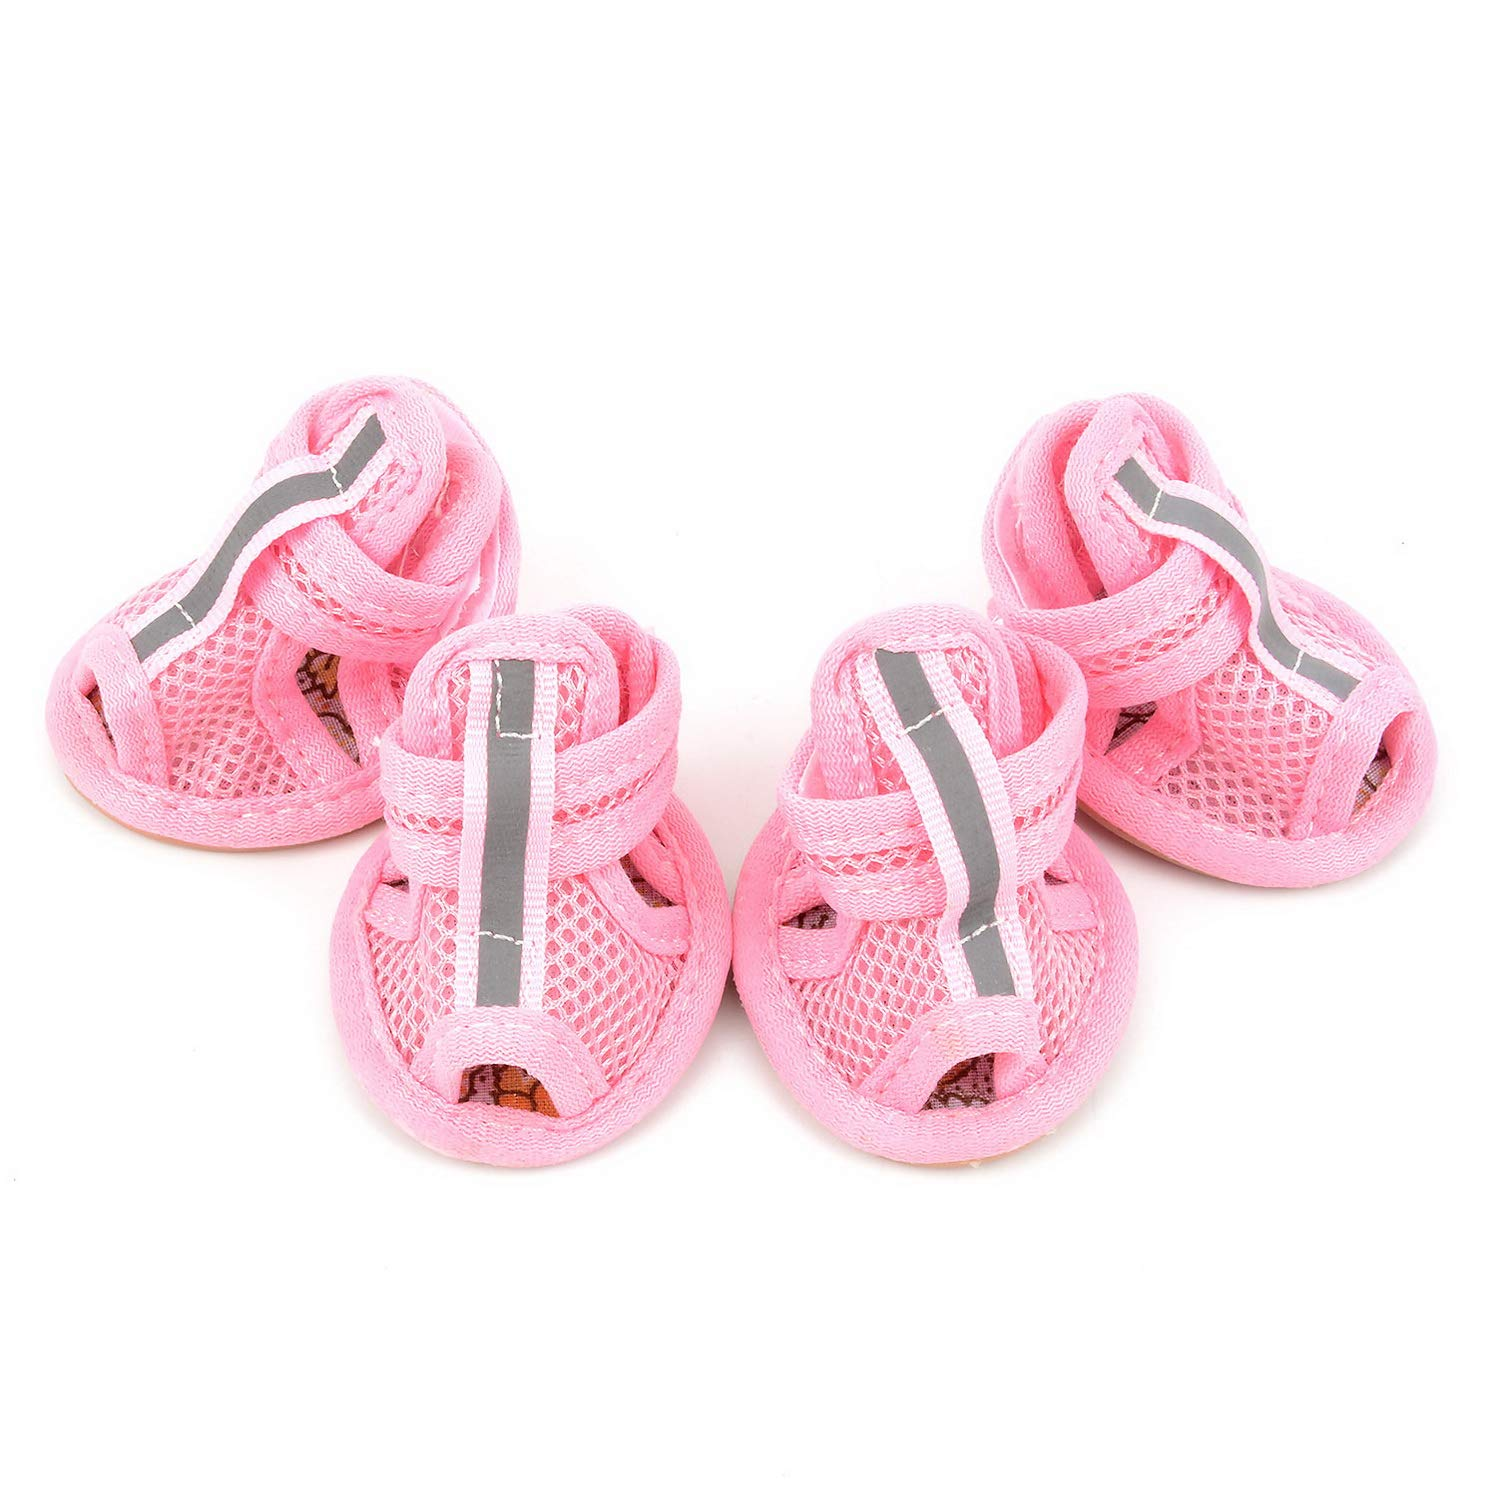 ZUNEA Summer Mesh Breathable Dog Shoes Sandals Non Slip Paw Protectors Reflective Adjustable Girls Female,for Small Pet Dog Cat Puppy Pink XL